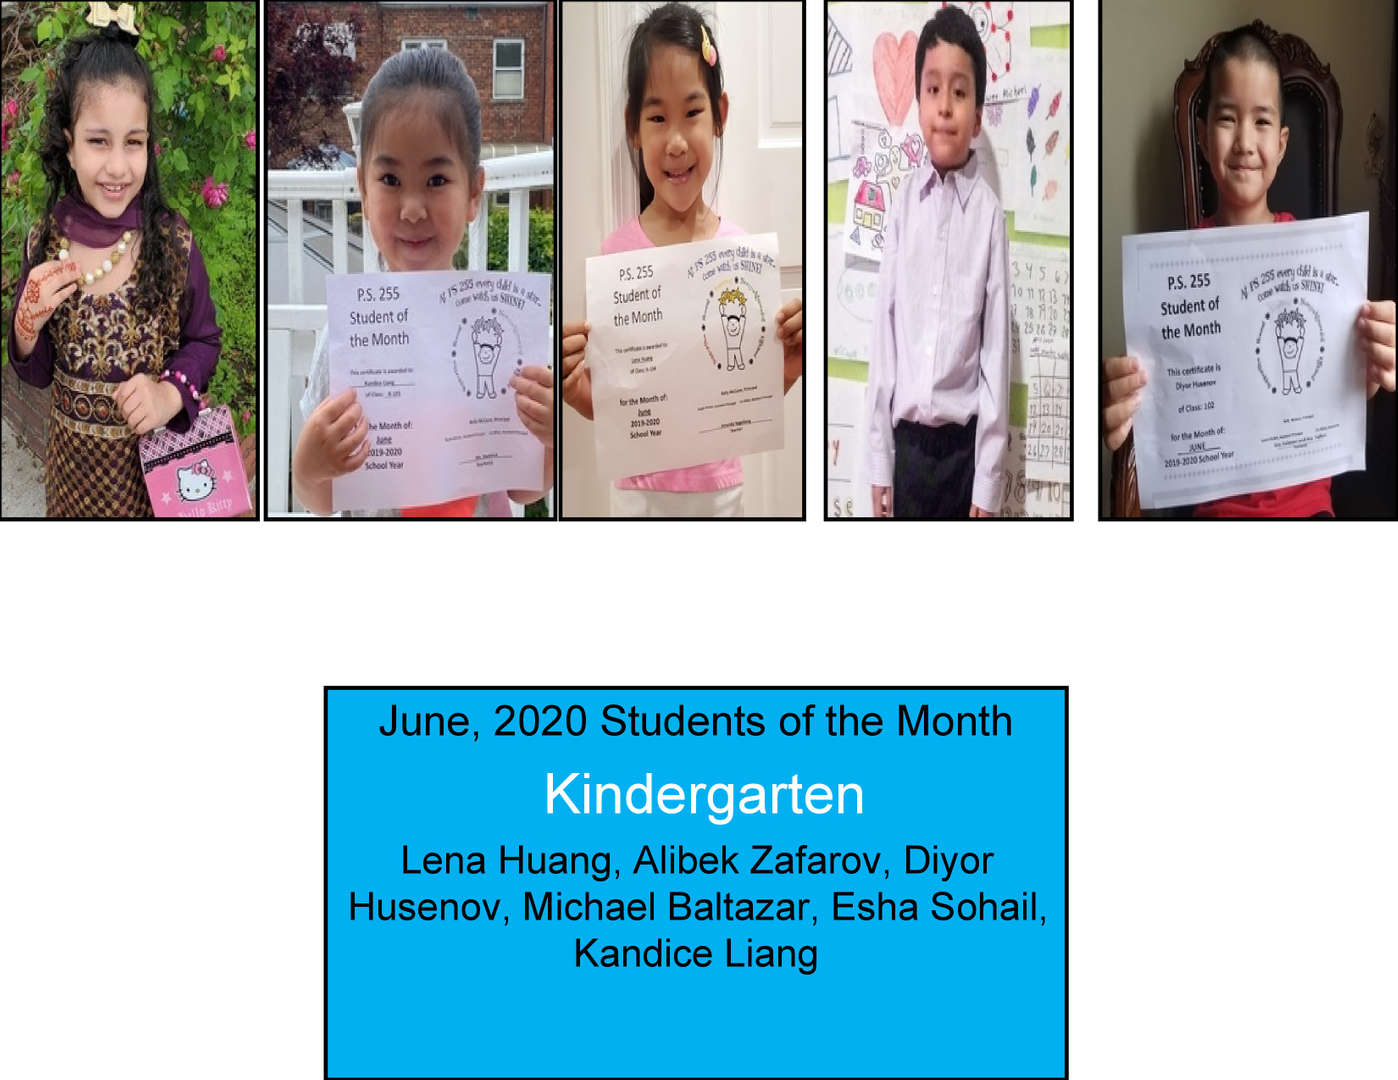 Kindergarteners Smiling in June for student of the month